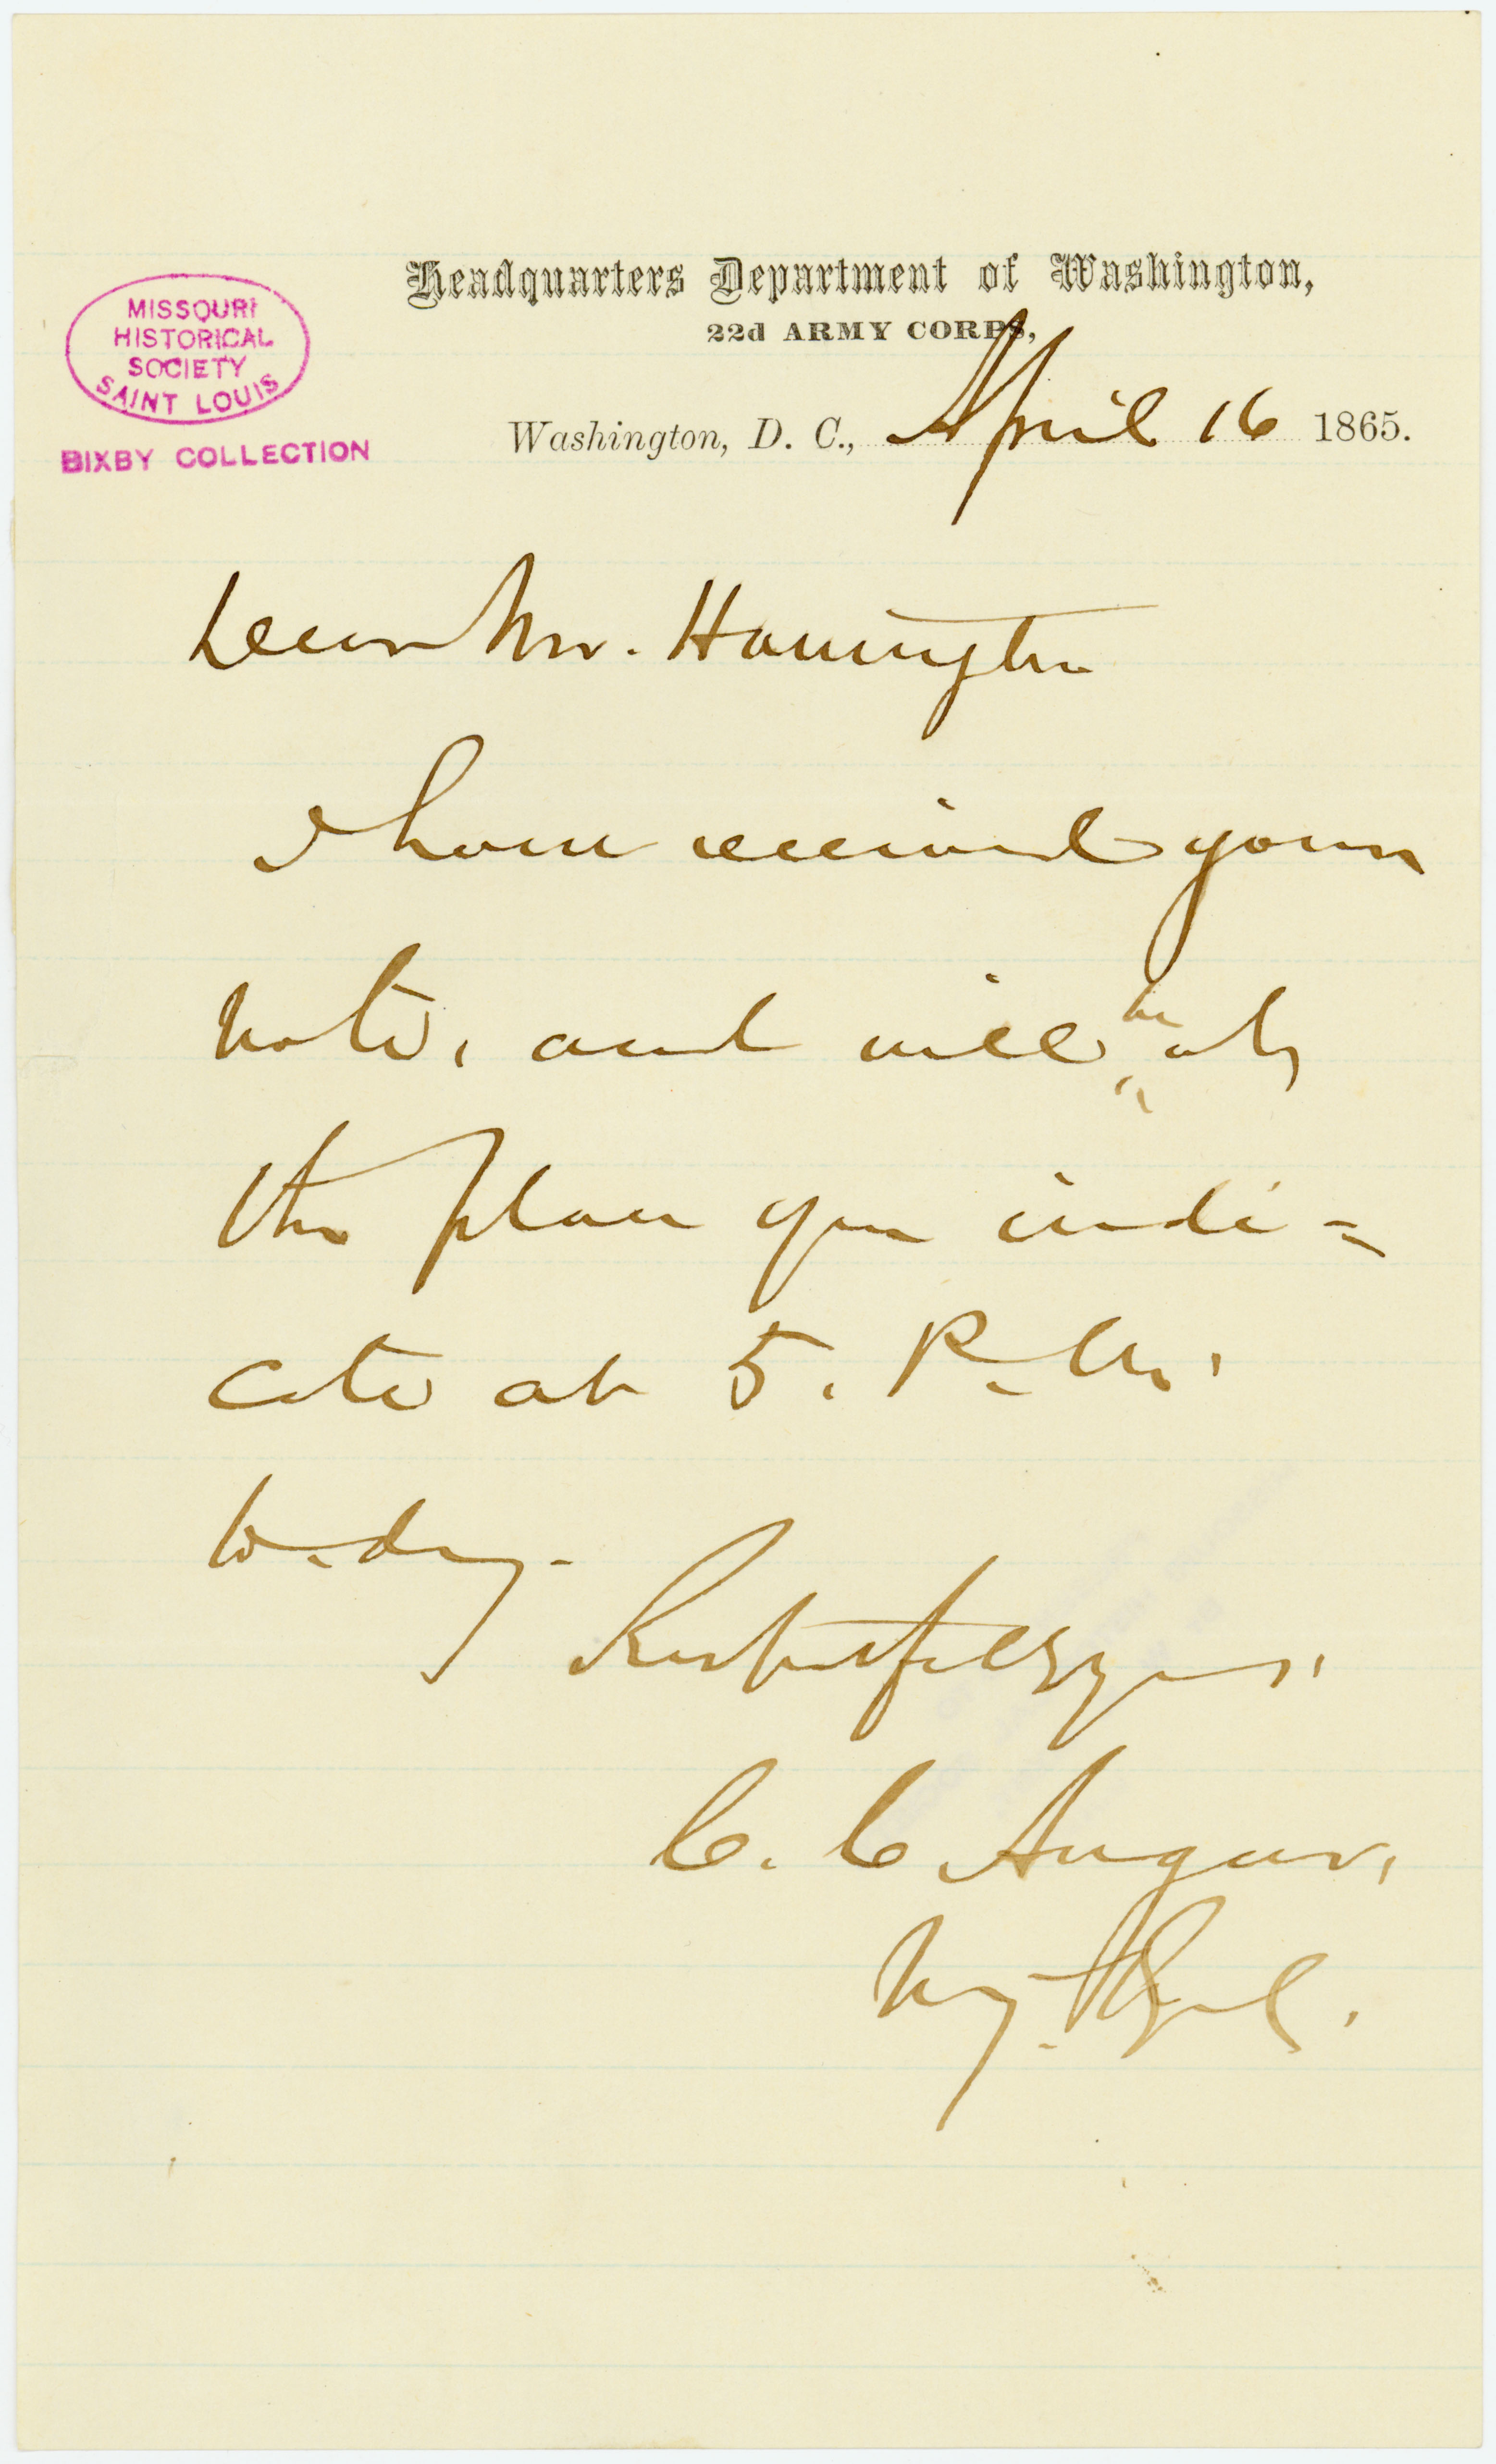 Note signed C.C. Augur, Headquarters Department of Washington, 22d Army Corps, Washington, D.C., to Mr. Harrington [George Harrington], April 16, 1865